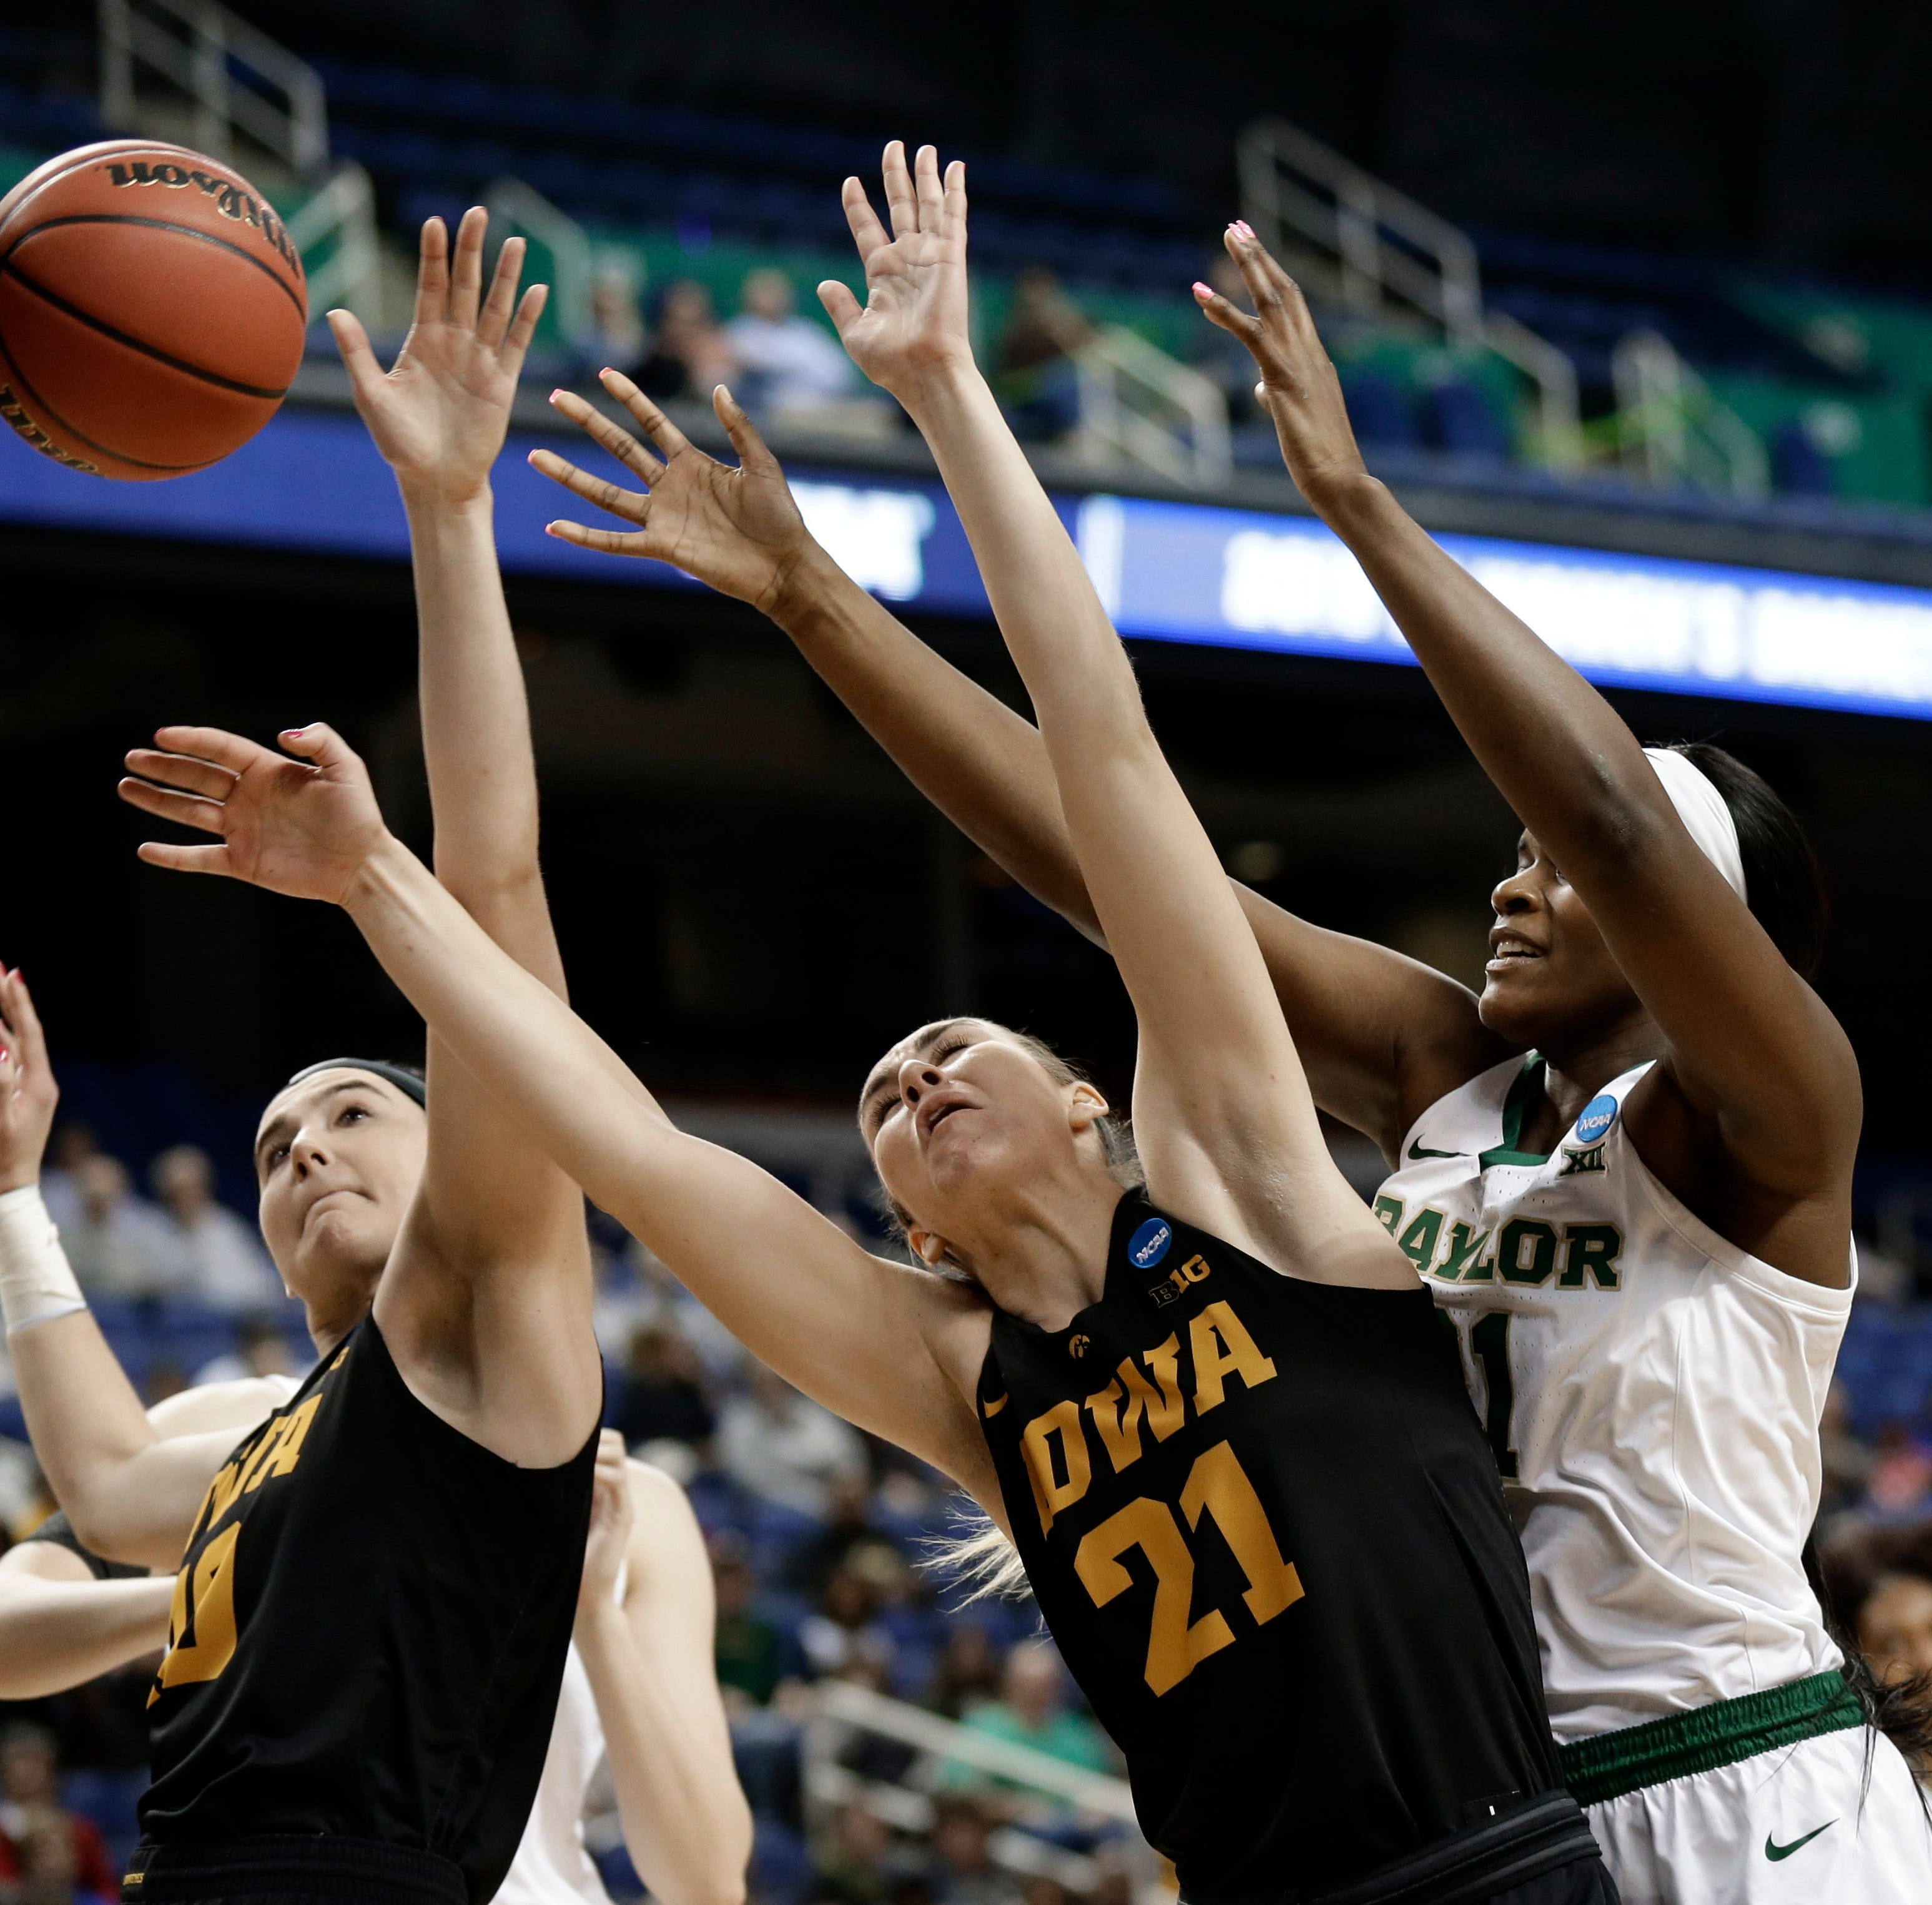 Baylor's firepower pushes Bears past Iowa in Elite Eight